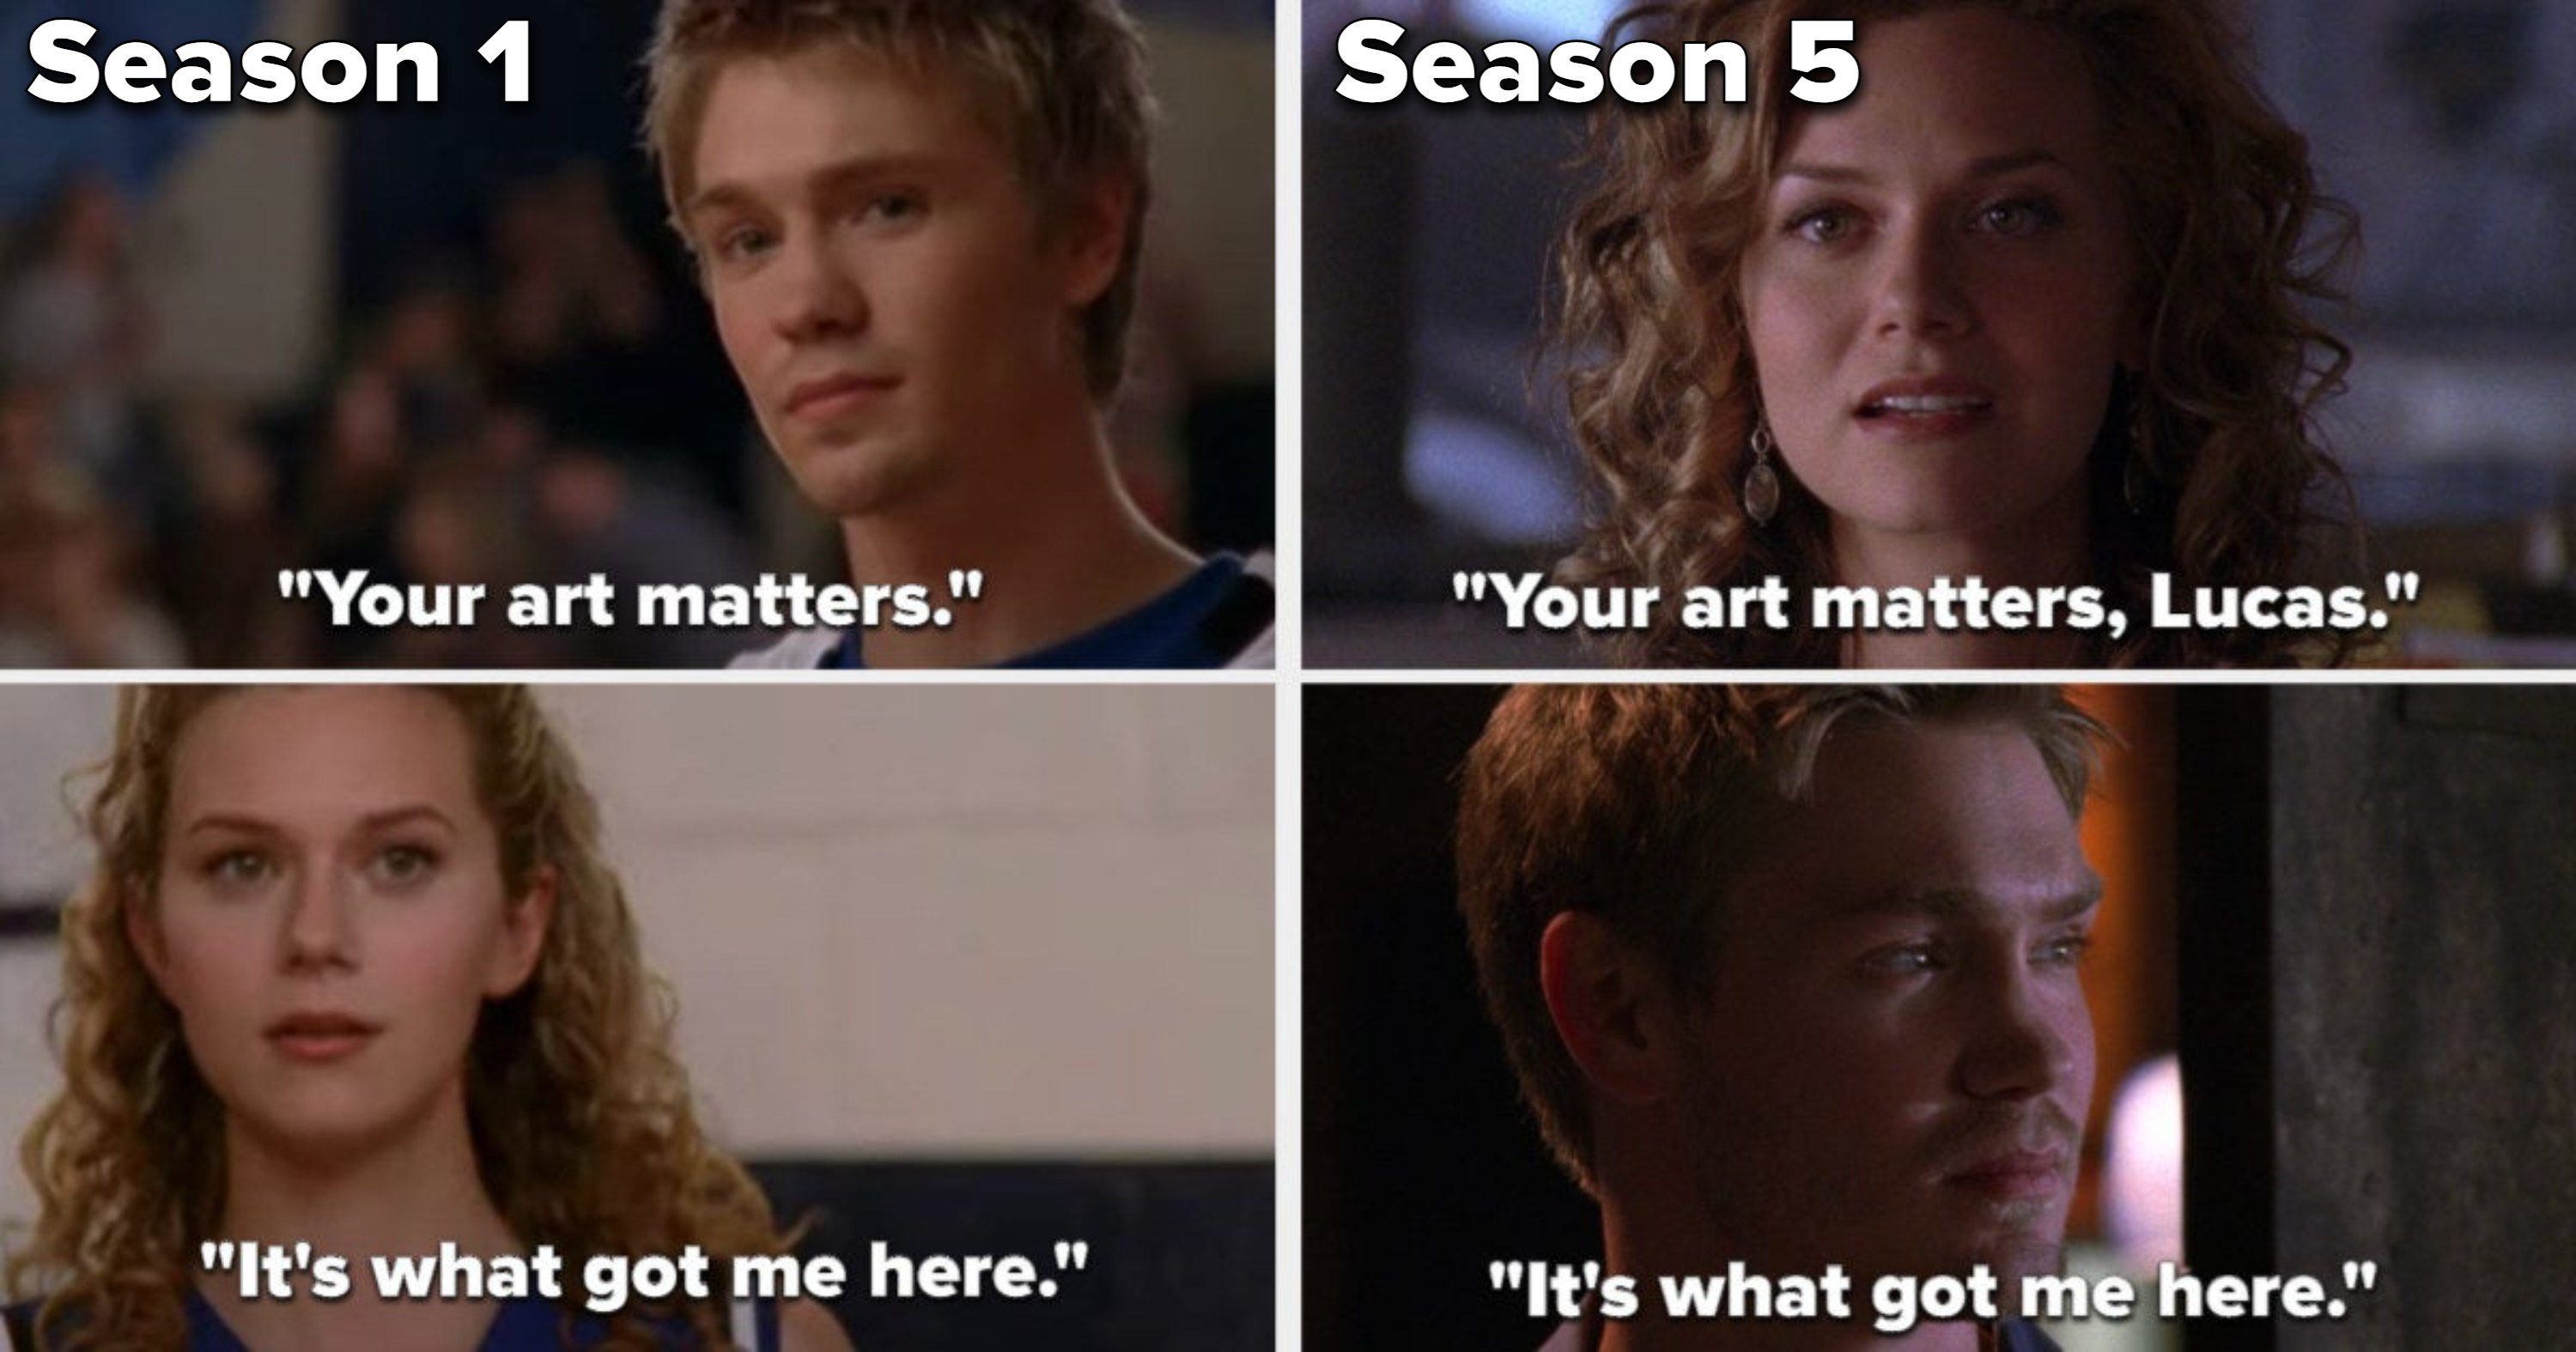 Lucas tells Peyton her art matters and it's what got him there at a game in Season 1, and in Season 5, Peyton says the same to Lucas at TRIC